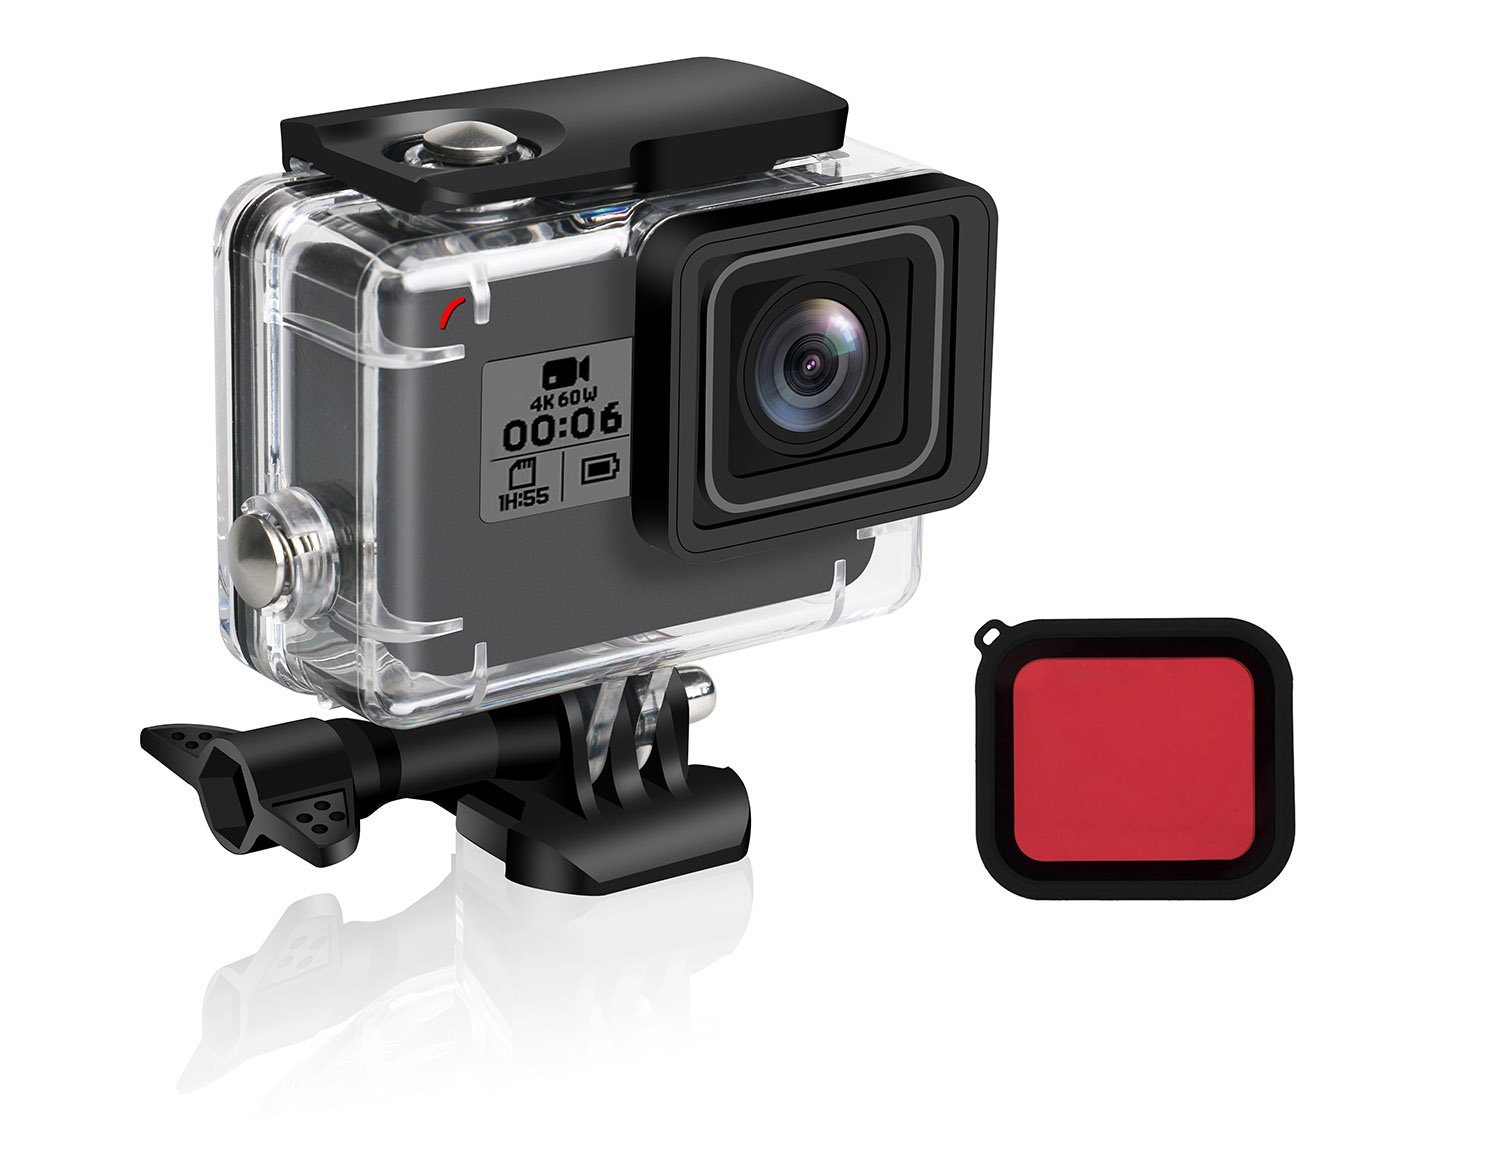 FINEST+ Waterproof Housing Shell for GoPro Hero 7/2018/6/5 Black Diving Protective Housing Case 45m with Red Filter and Bracket Accessories for Go Pro ...